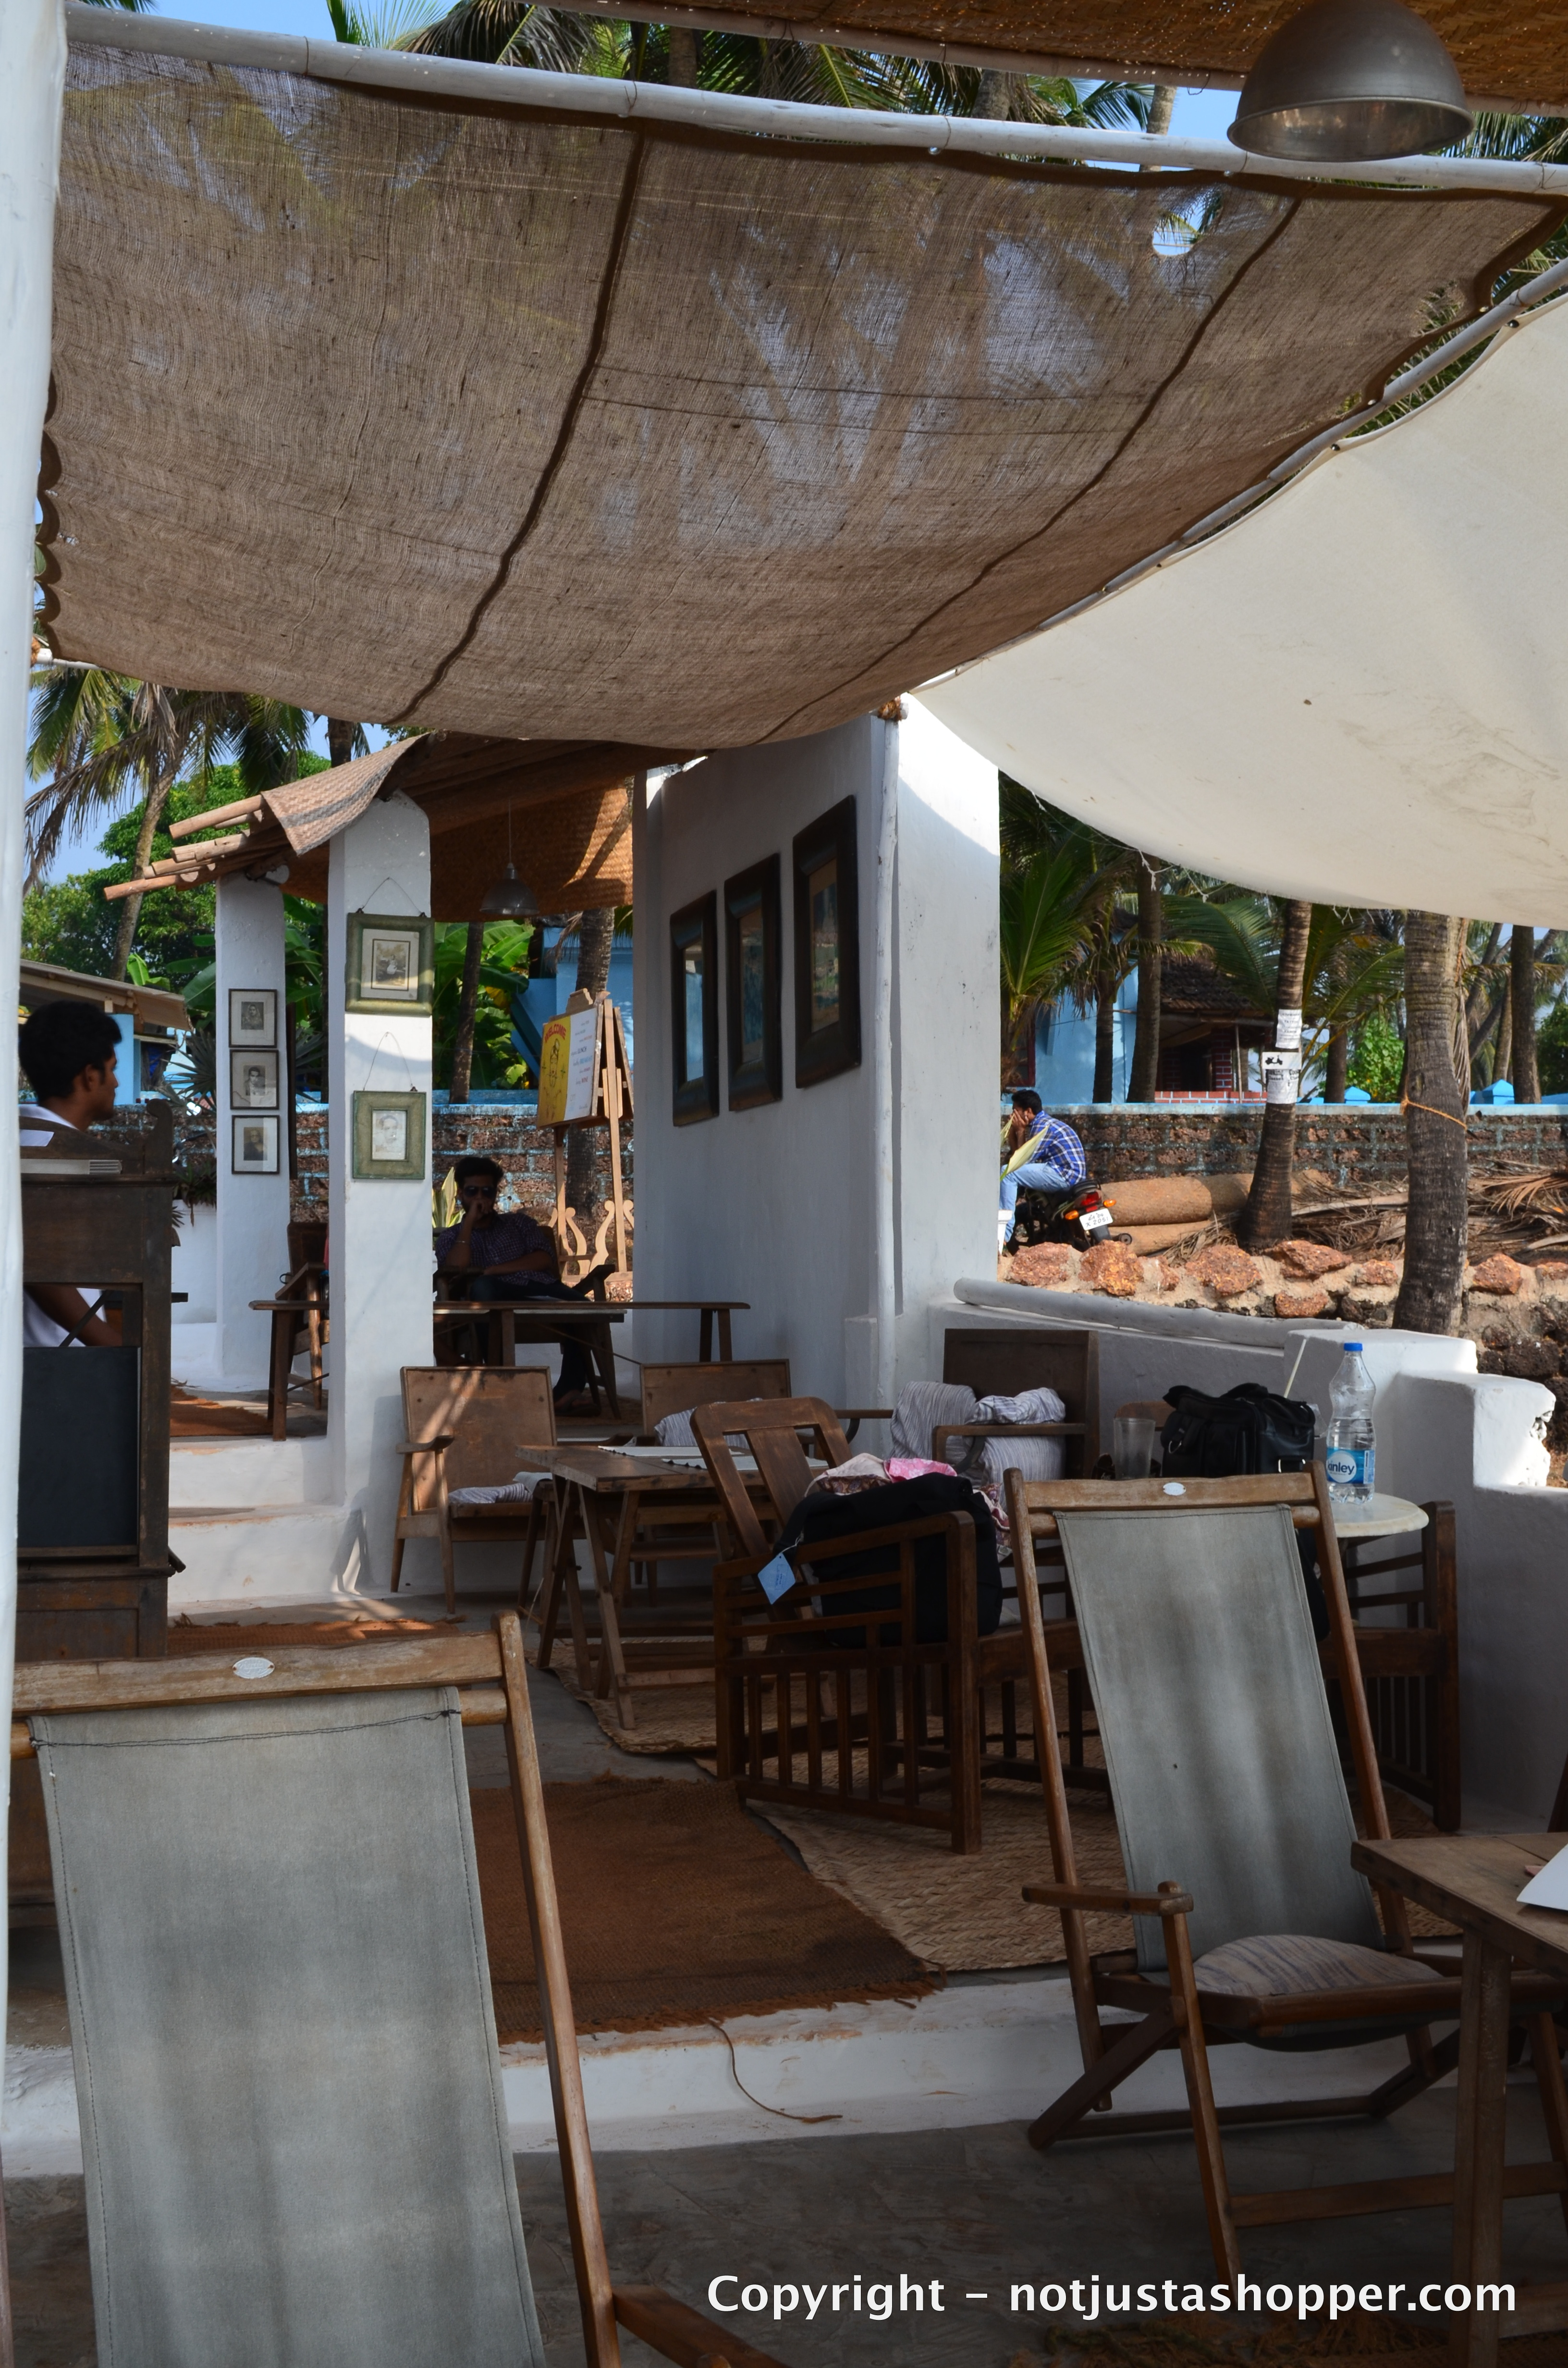 om-made-cafe-anjuna-goa